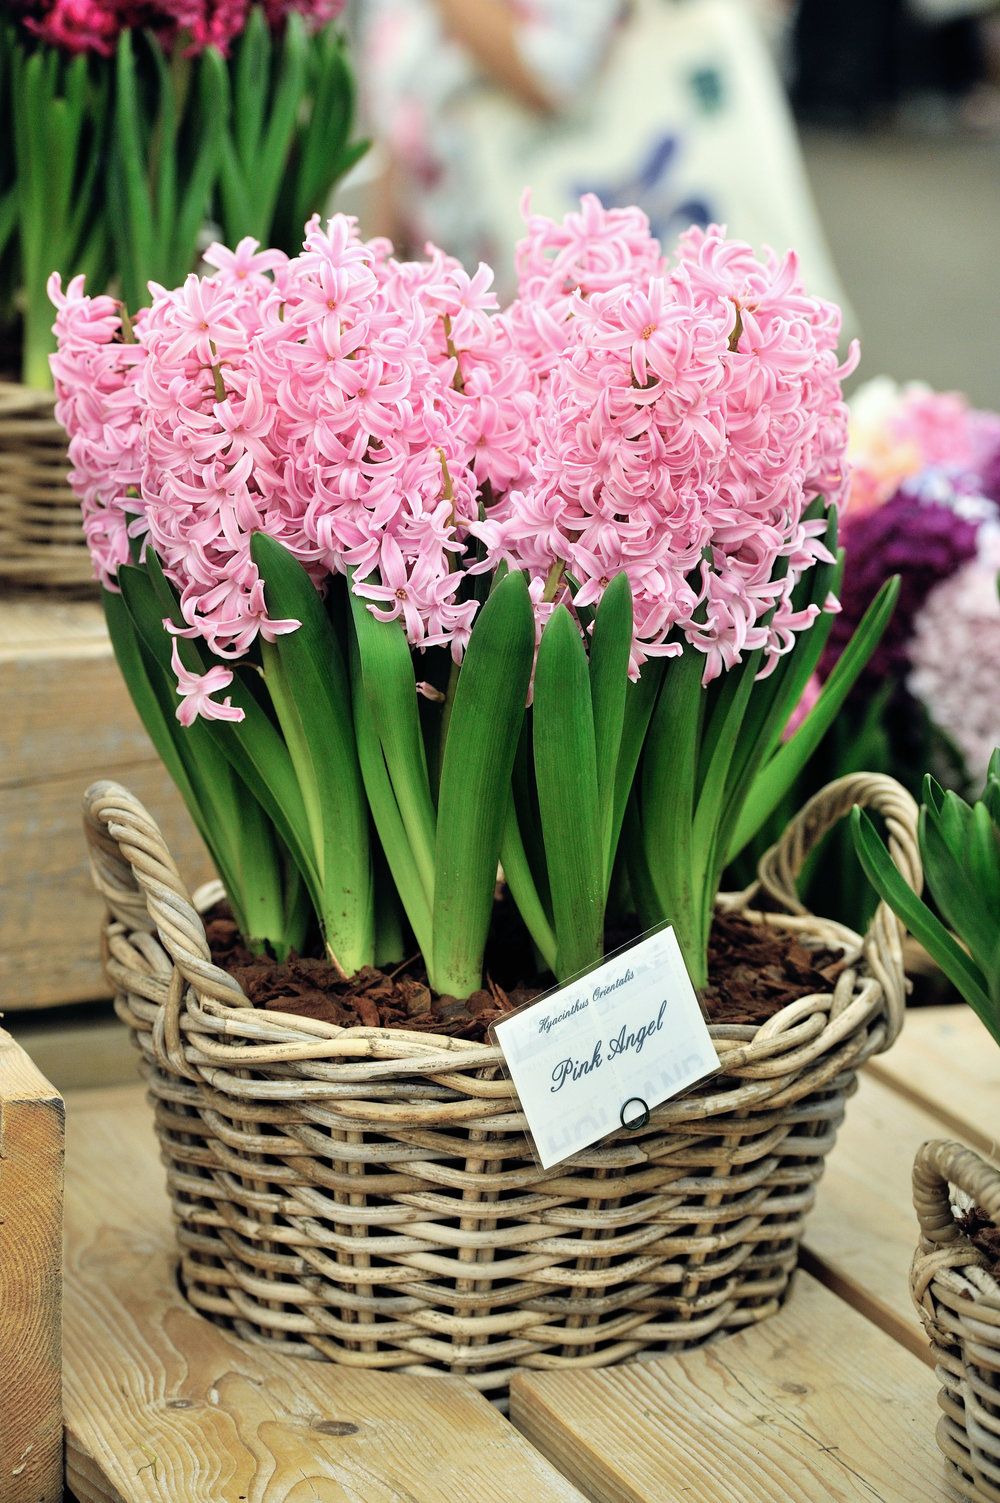 Hyacinths will fill your home with scent